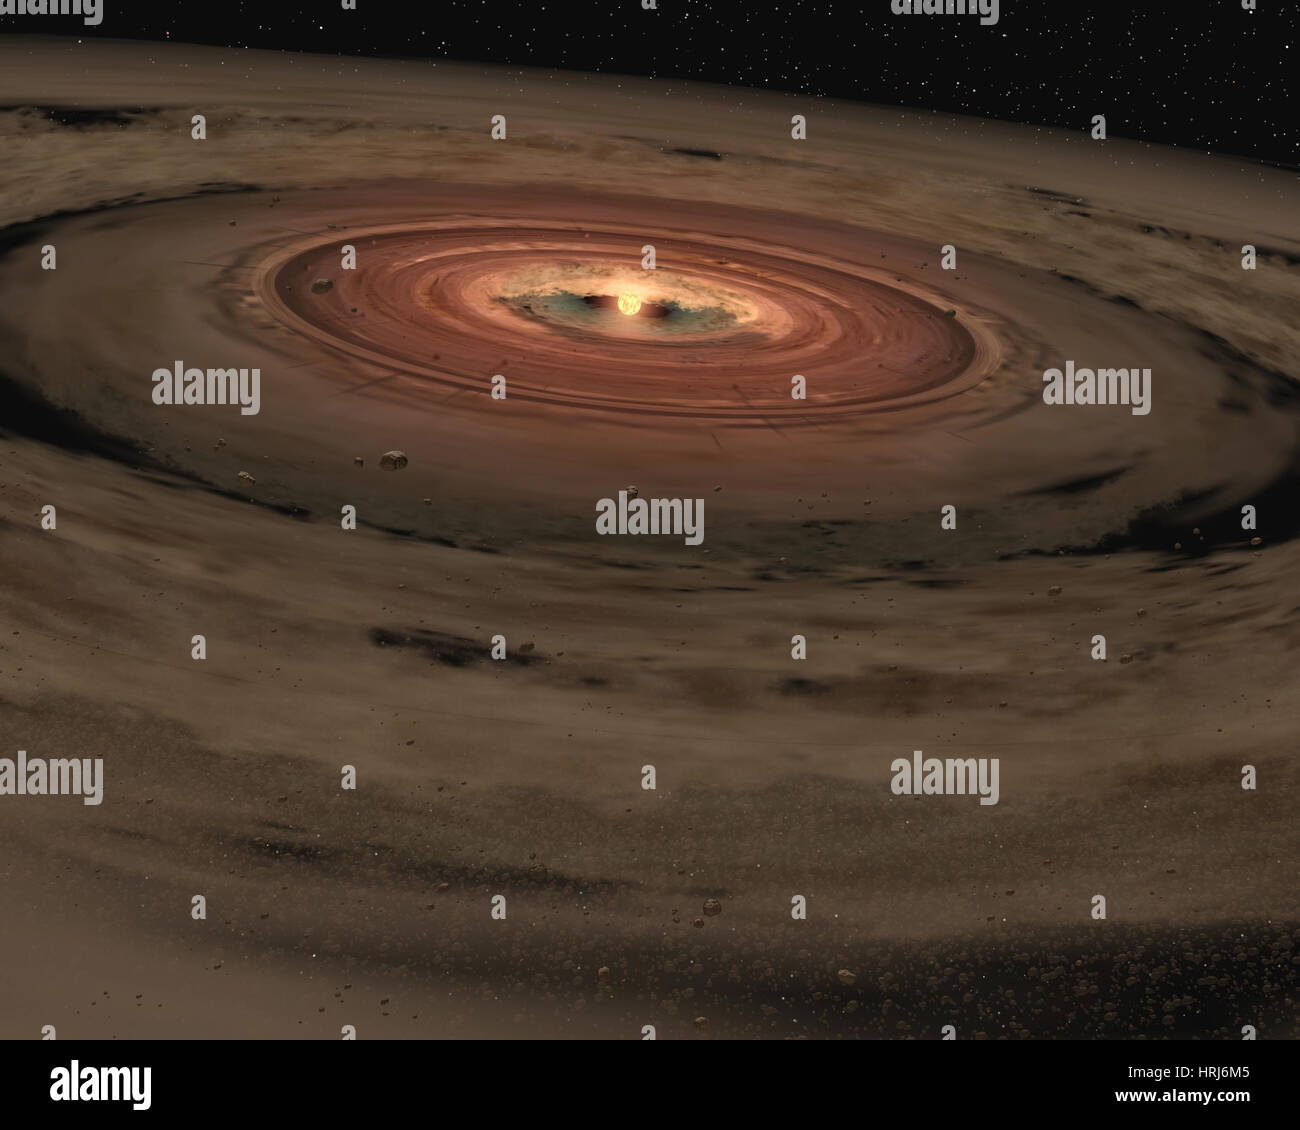 OTS 44, Brown Dwarf, Birth of an Unusual Planetary System - Stock Image